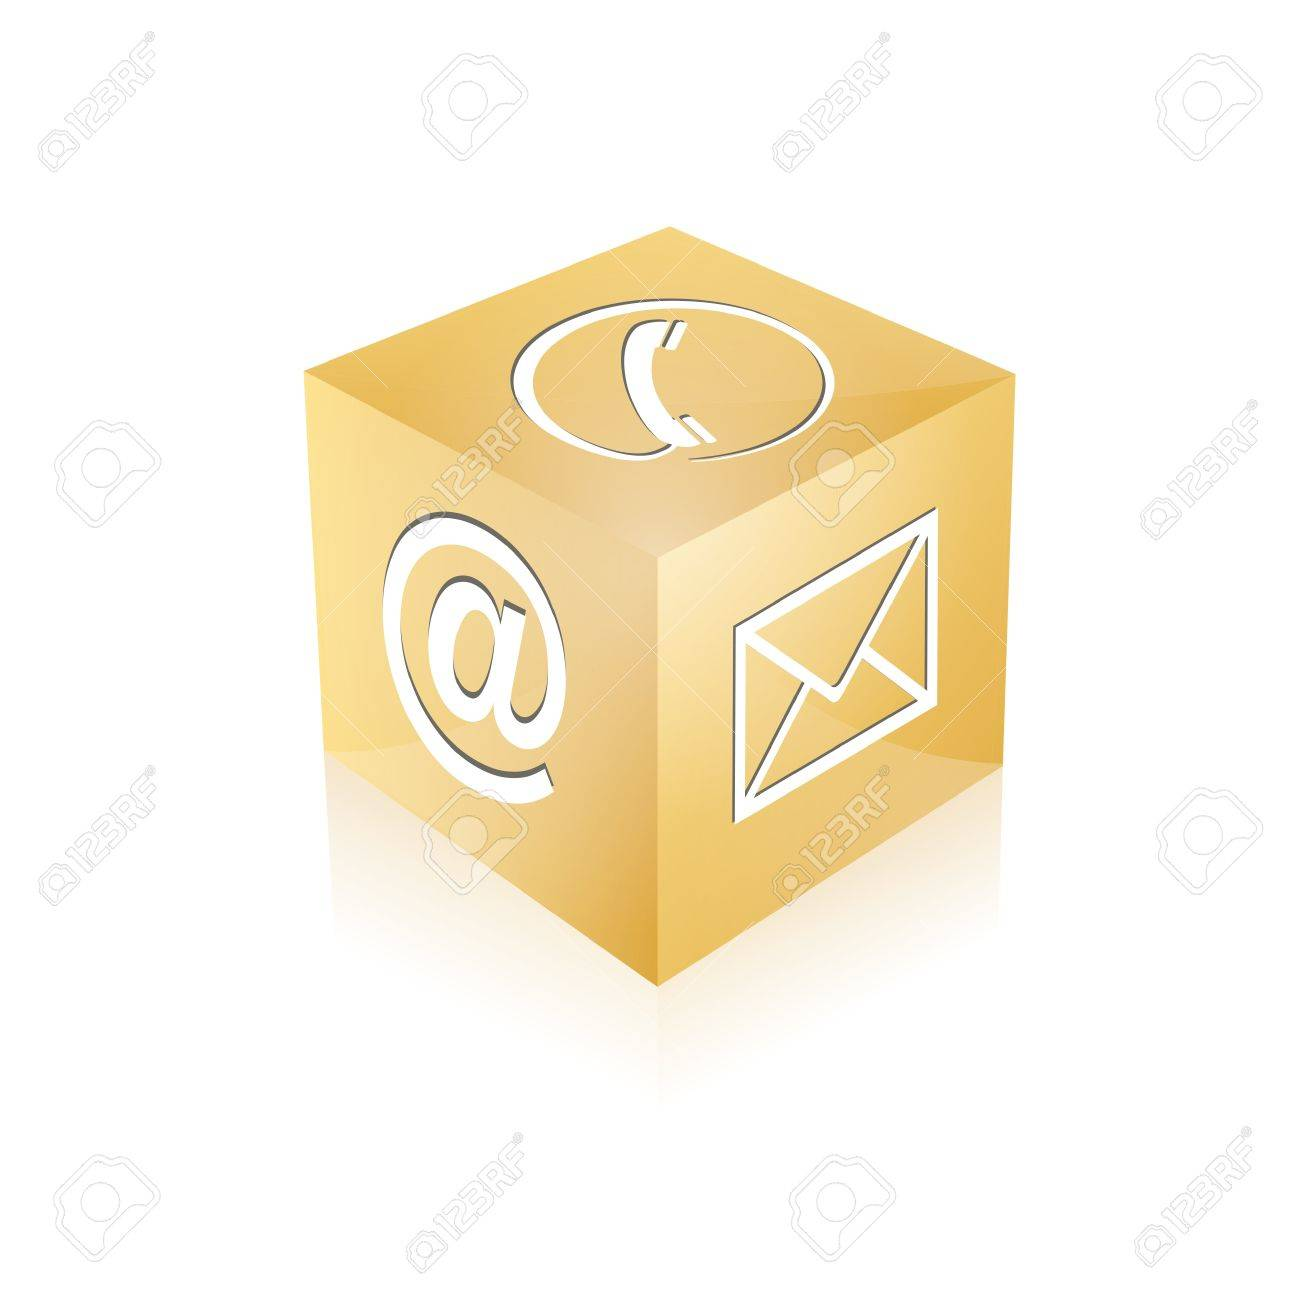 Contact cube phone at email e-mail hotline kontaktfomular callcenter call pictogram sign symbol cube Stock Vector - 14757913